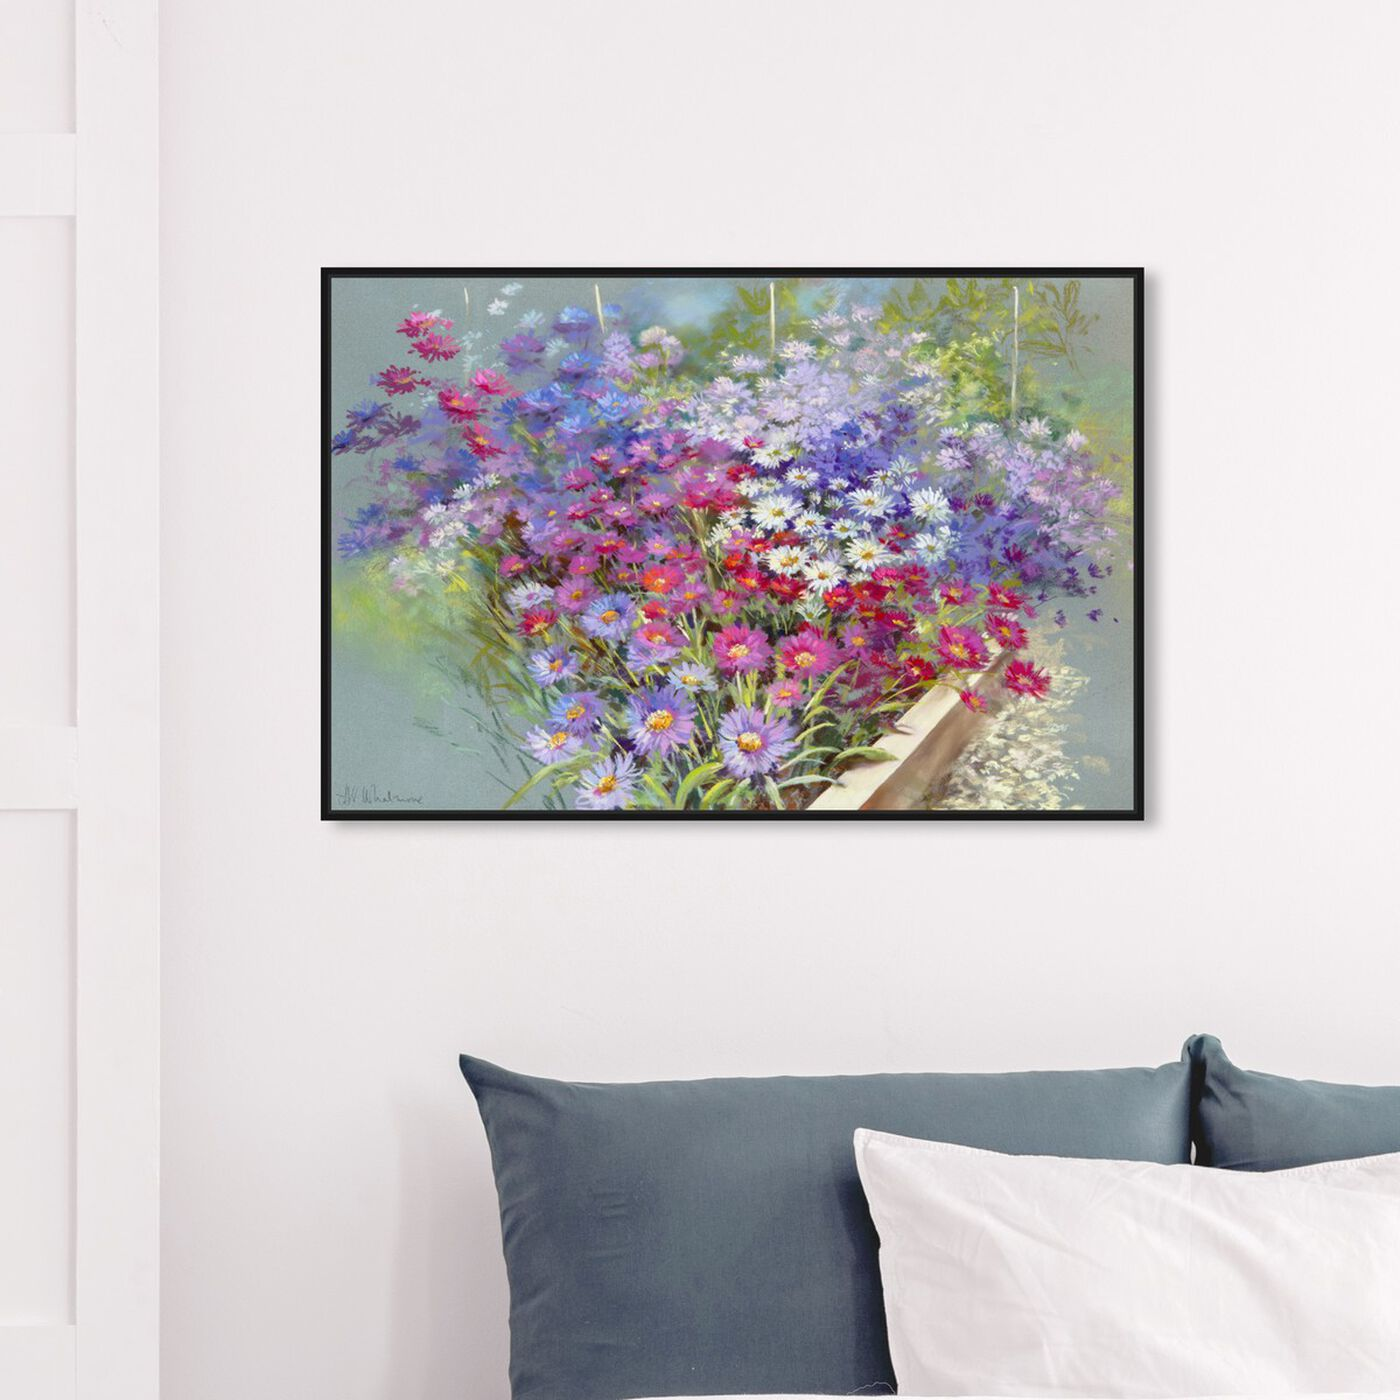 Hanging view of Sai - Shades of Lavander 3NW3403 featuring floral and botanical and florals art.